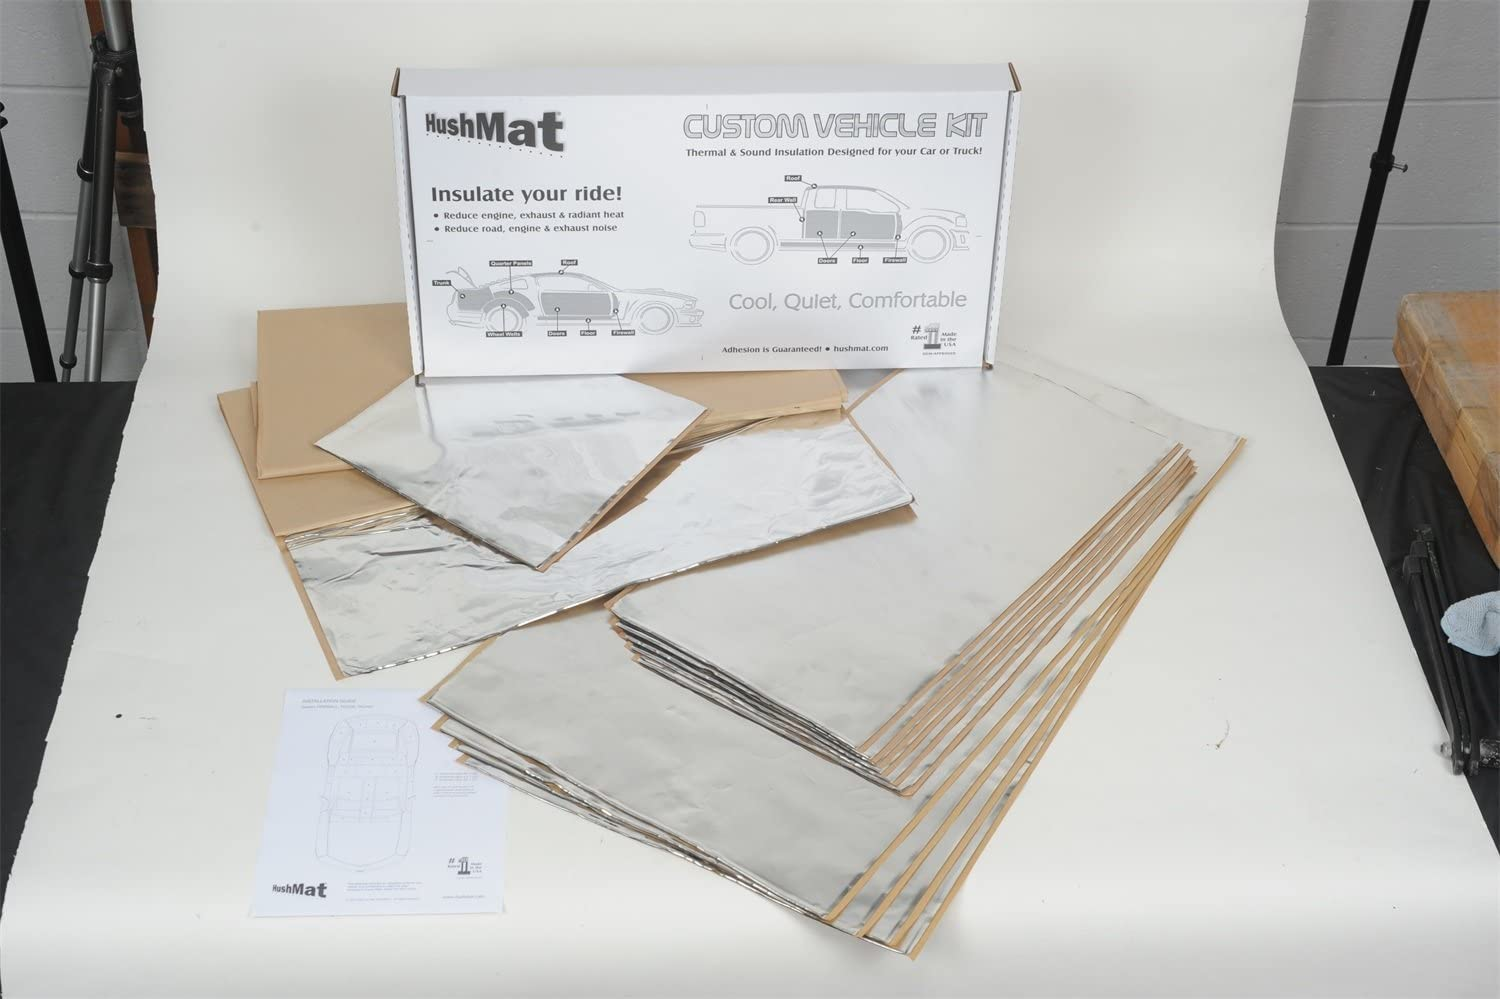 1967-1968 Mustang Roof HushMat 612675 Sound and Thermal Insulation Kit